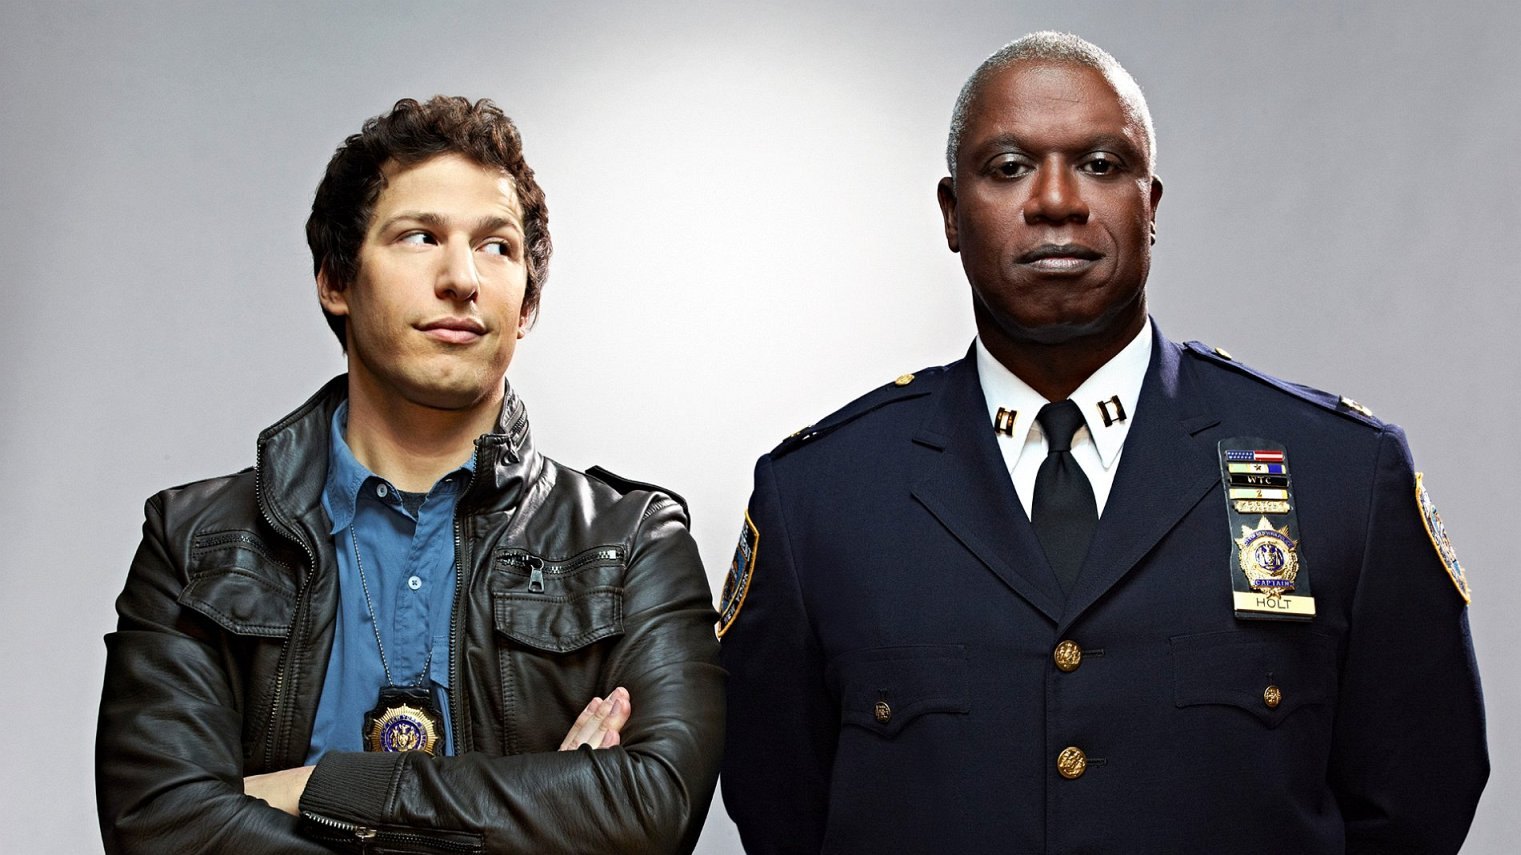 Brooklyn Nine-Nine season 6 air time